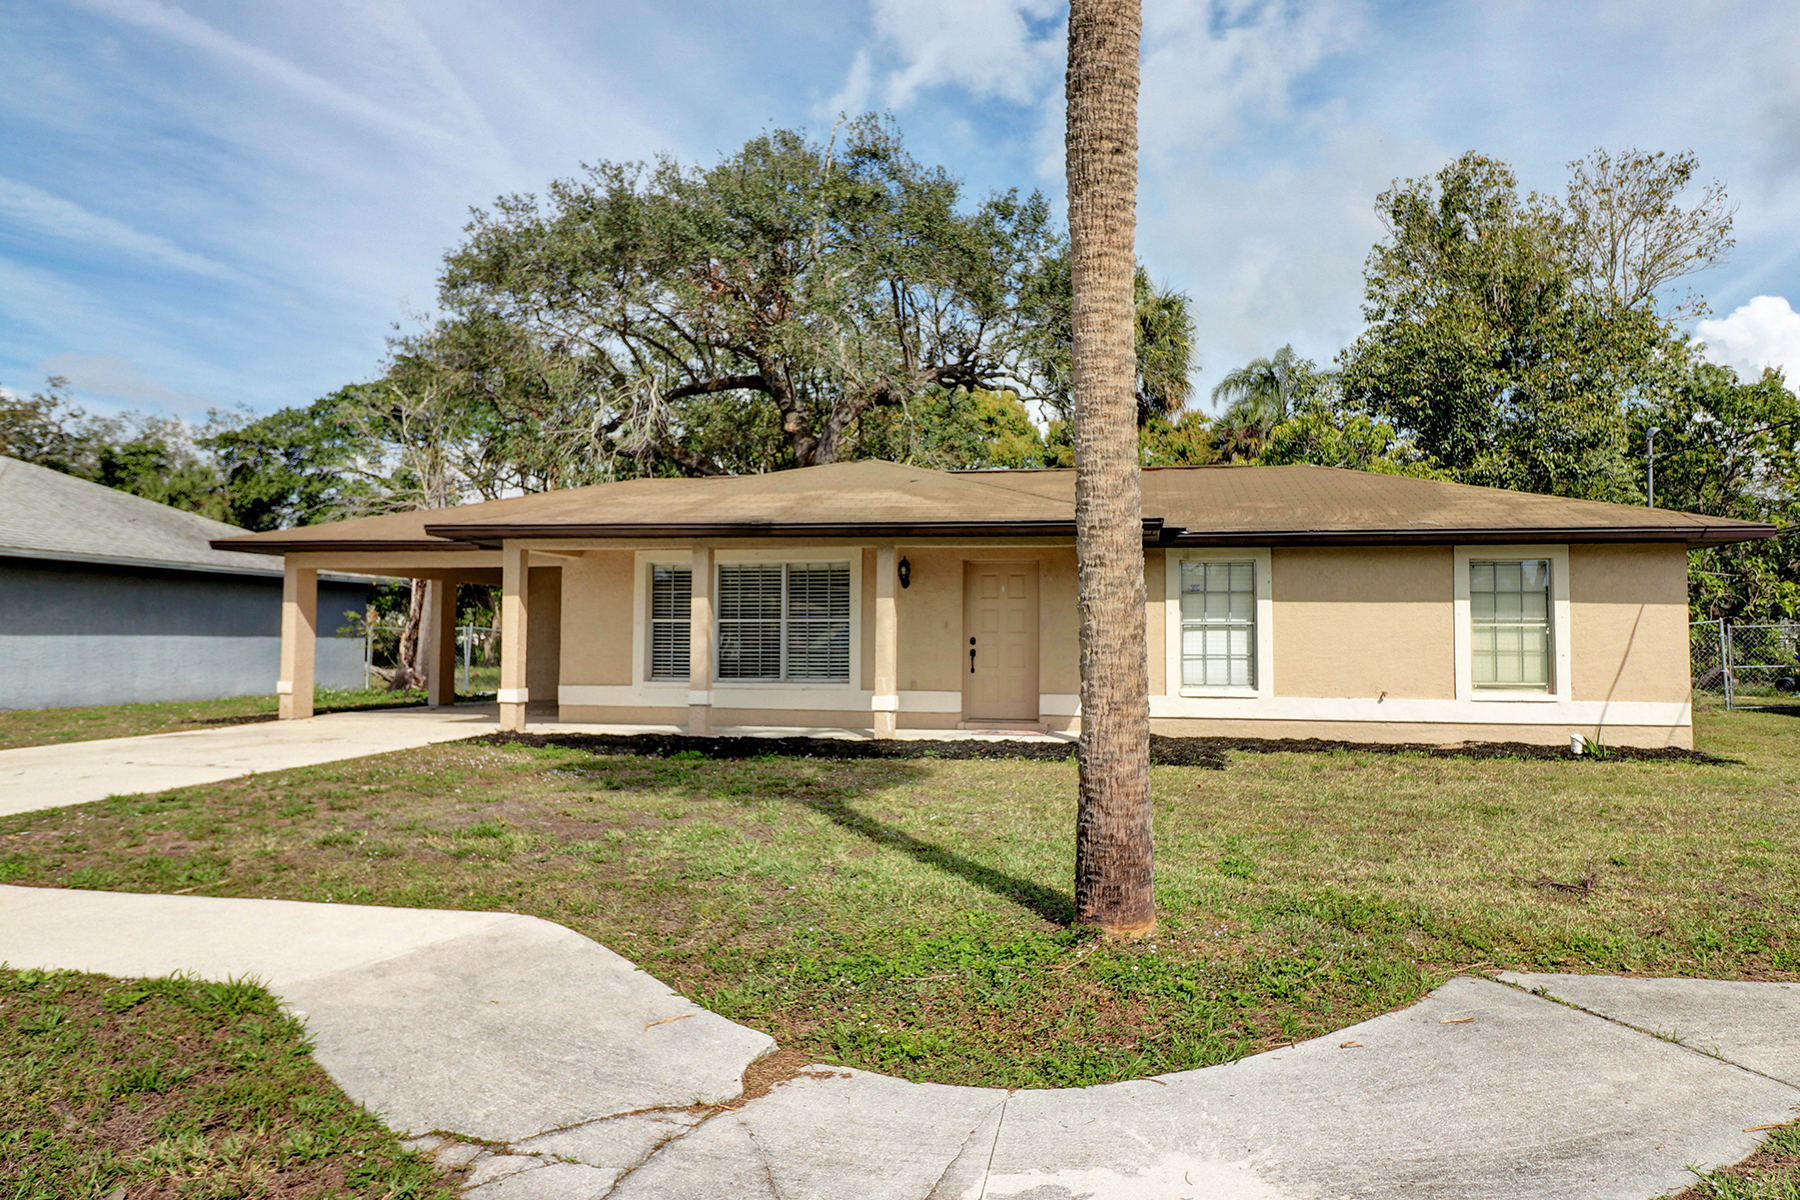 Single Family Home for Sale at 2623 Guava St , Fort Myers, FL 33916 2623 Guava St, Fort Myers, Florida, 33916 United States